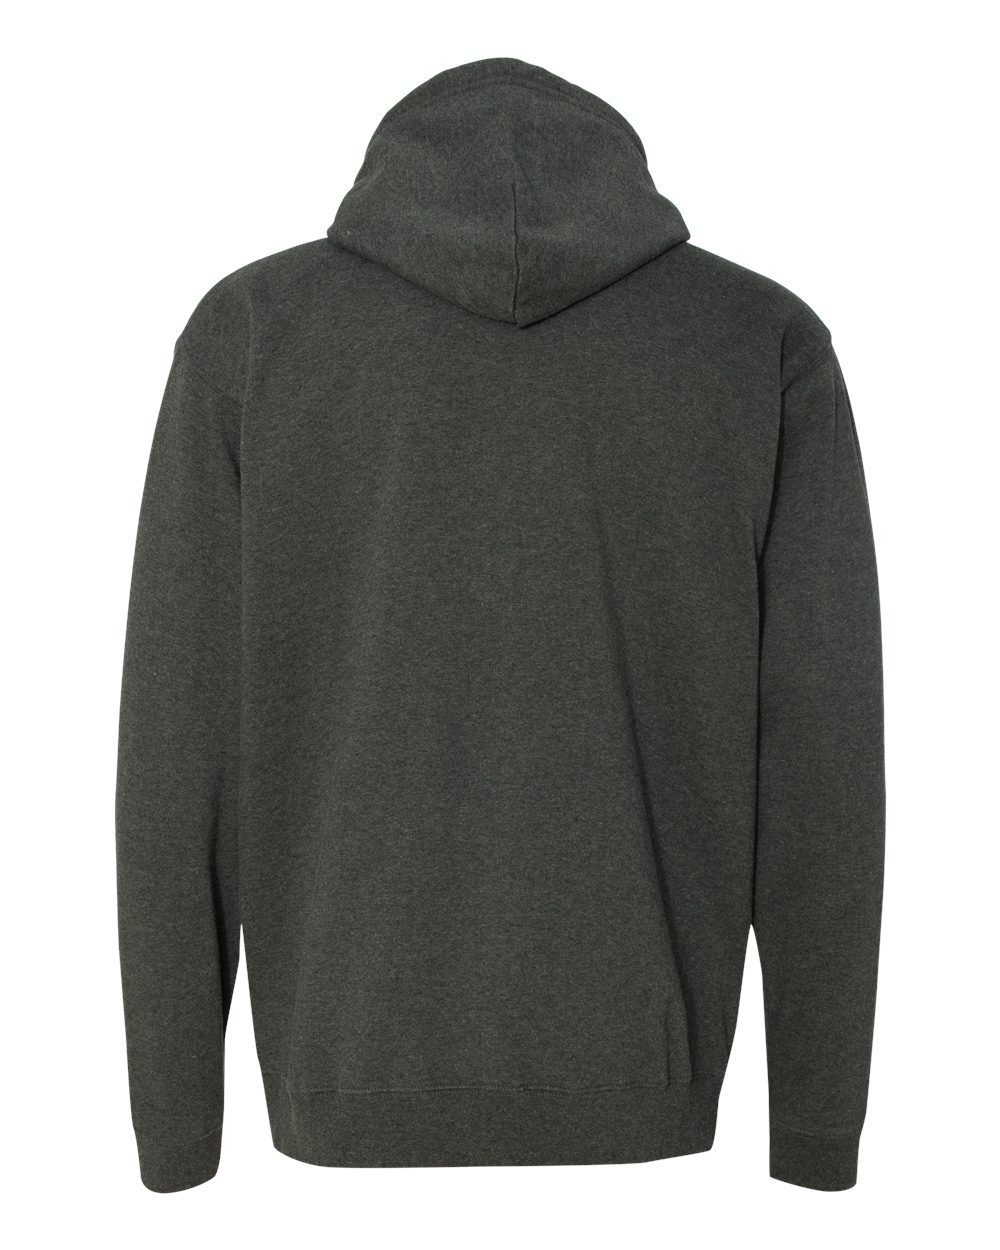 J-America-Tailgate-Hooded-Sweatshirt-with-beverage-holder-Pocket-8815-up-to-3XL thumbnail 10